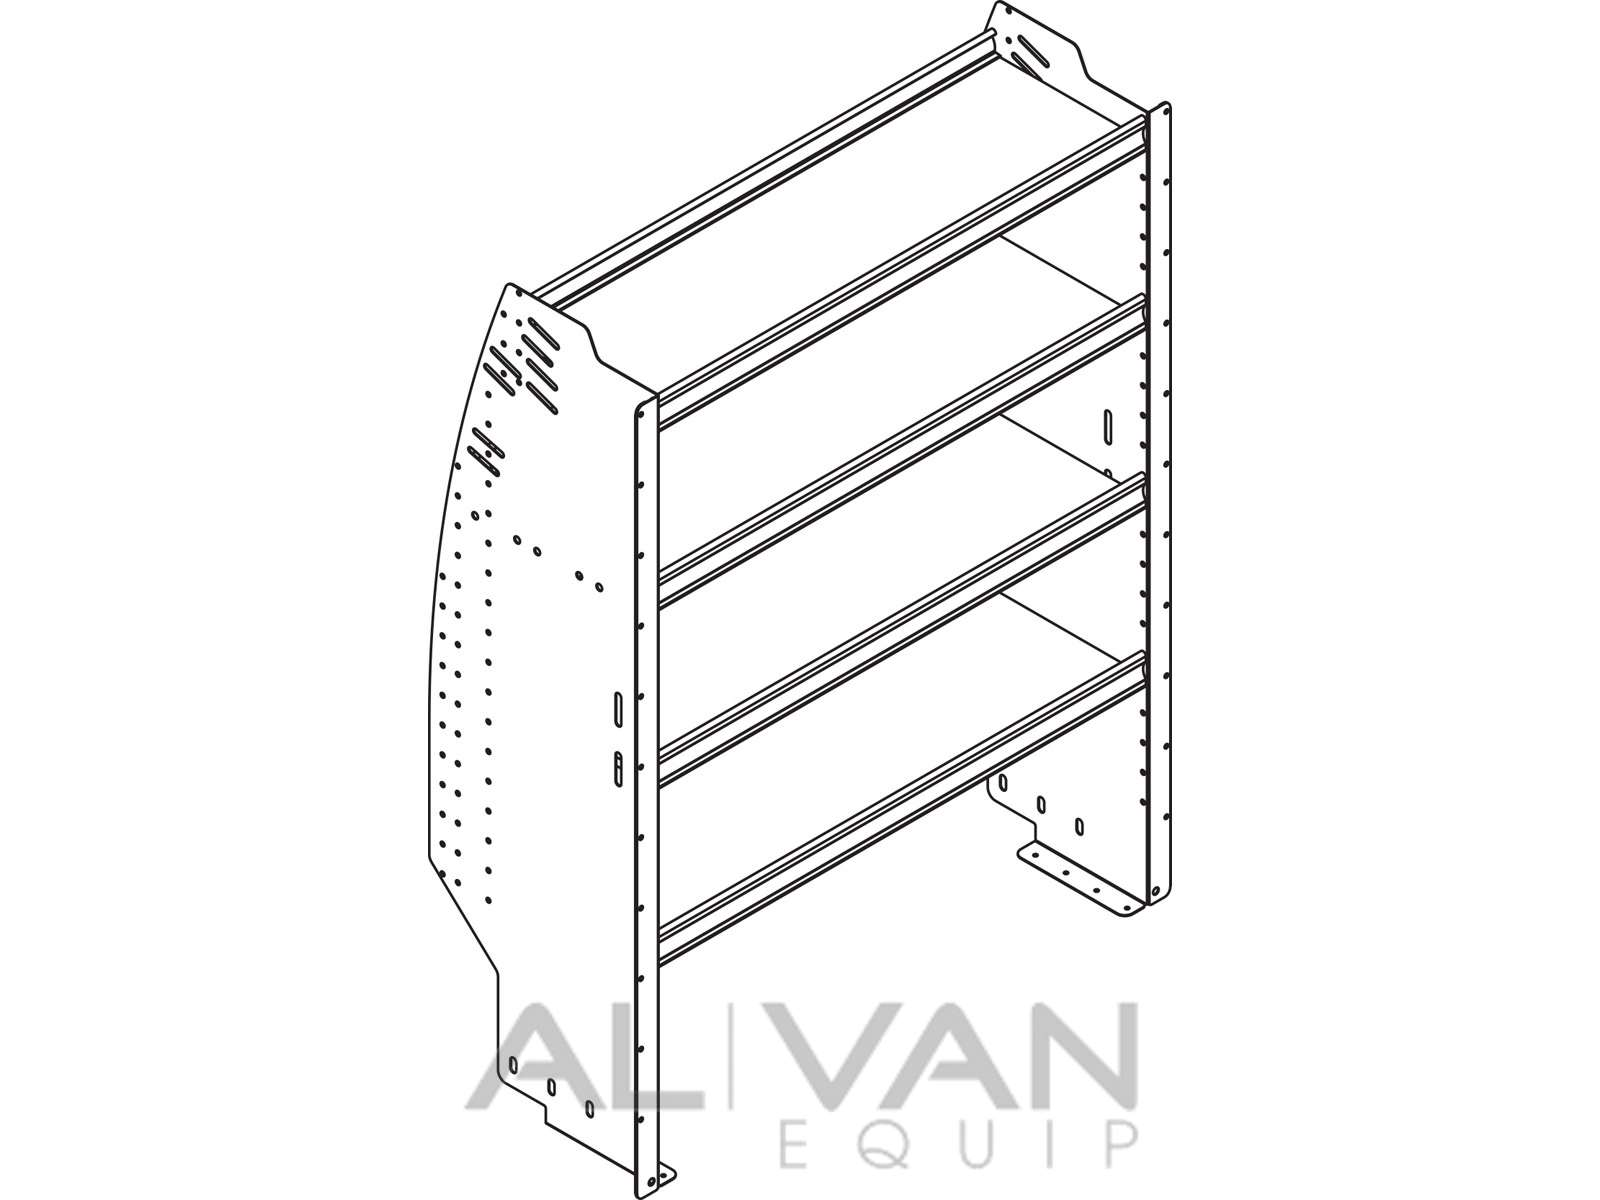 nissan nv 1500 fuse box diagram nissan fuse box cover